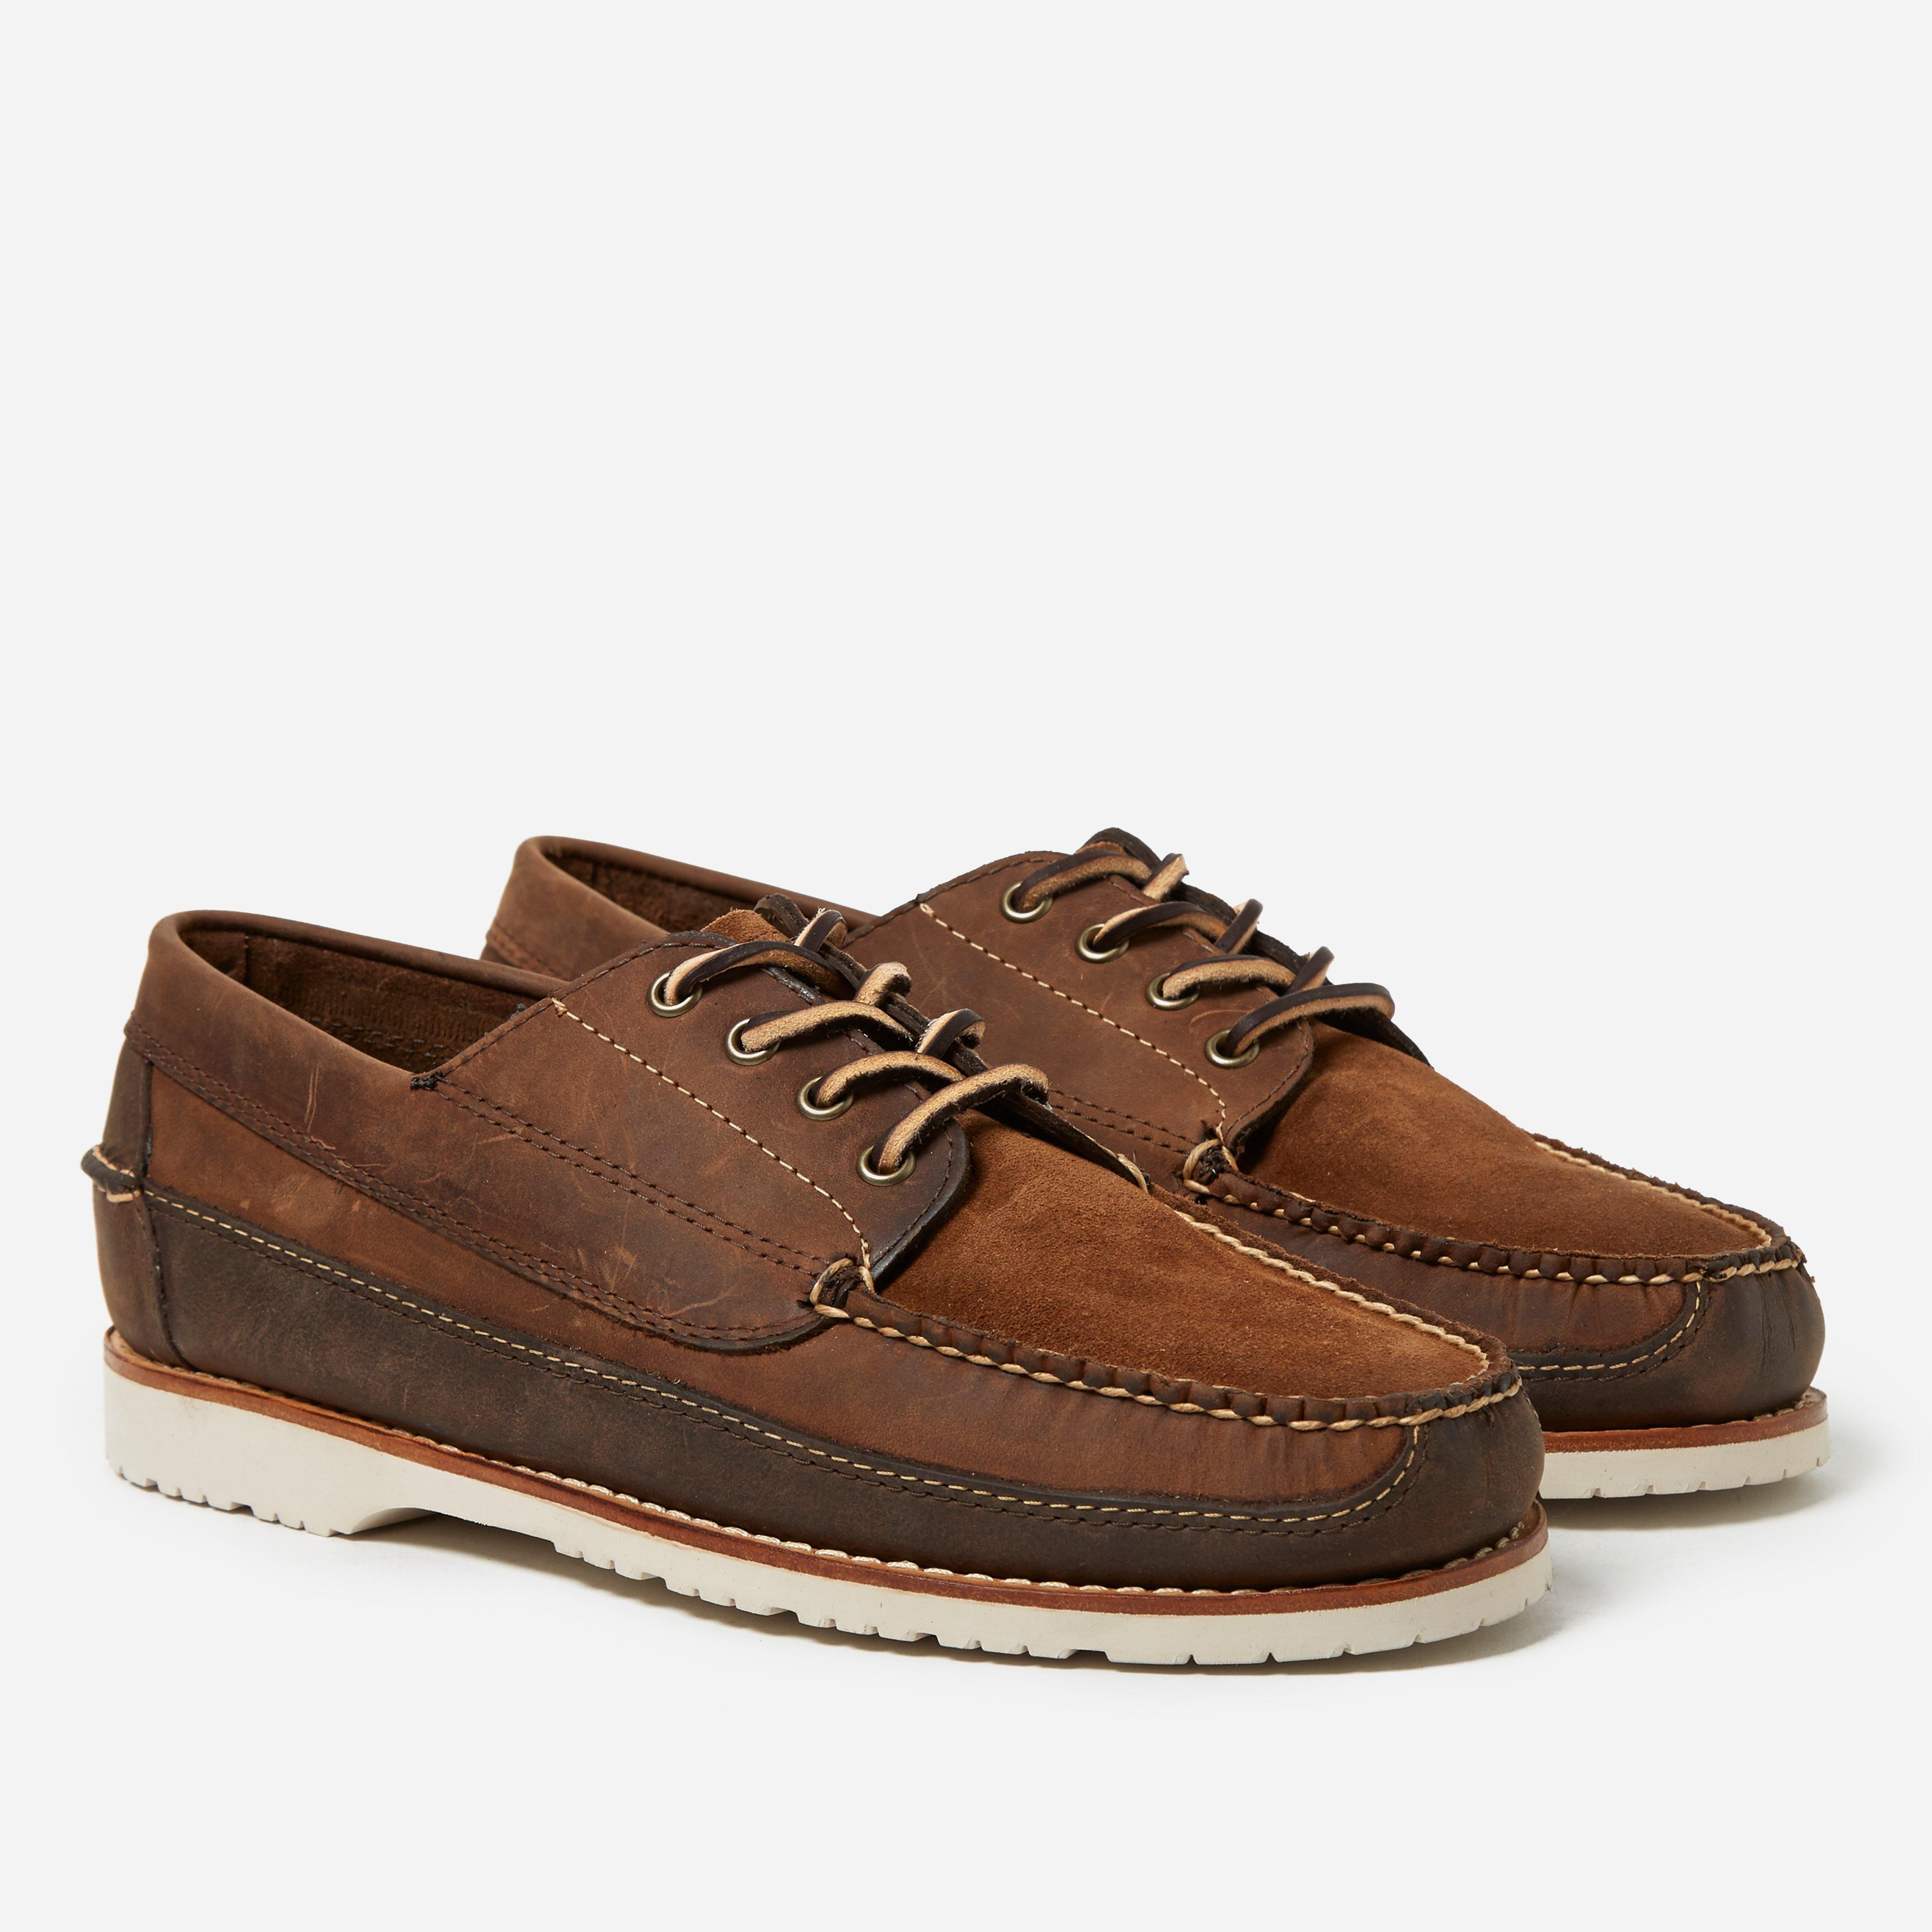 G.H.Bass & Co Camp Moc II Jackman Mix Leather Suede